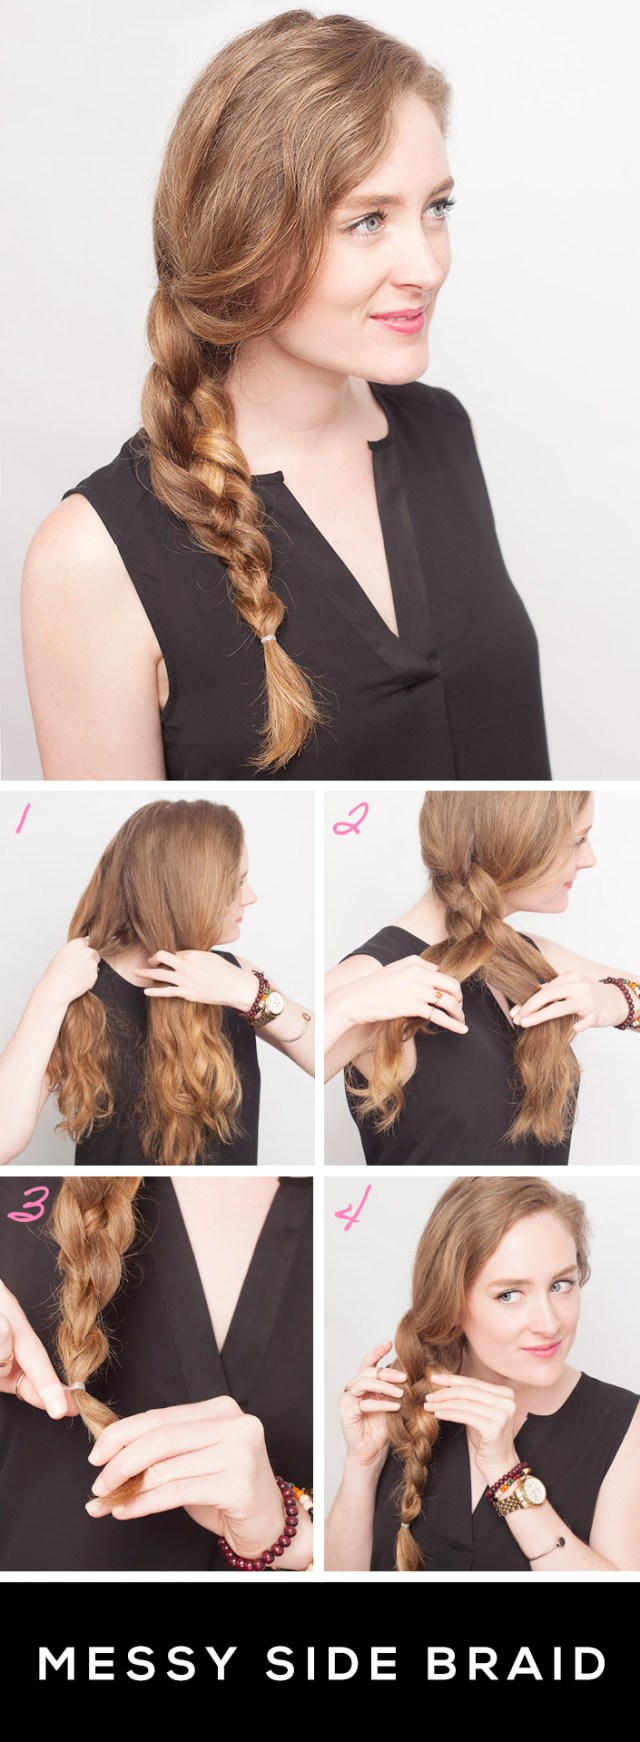 get a messy side braid in 4 easy steps | stylecaster